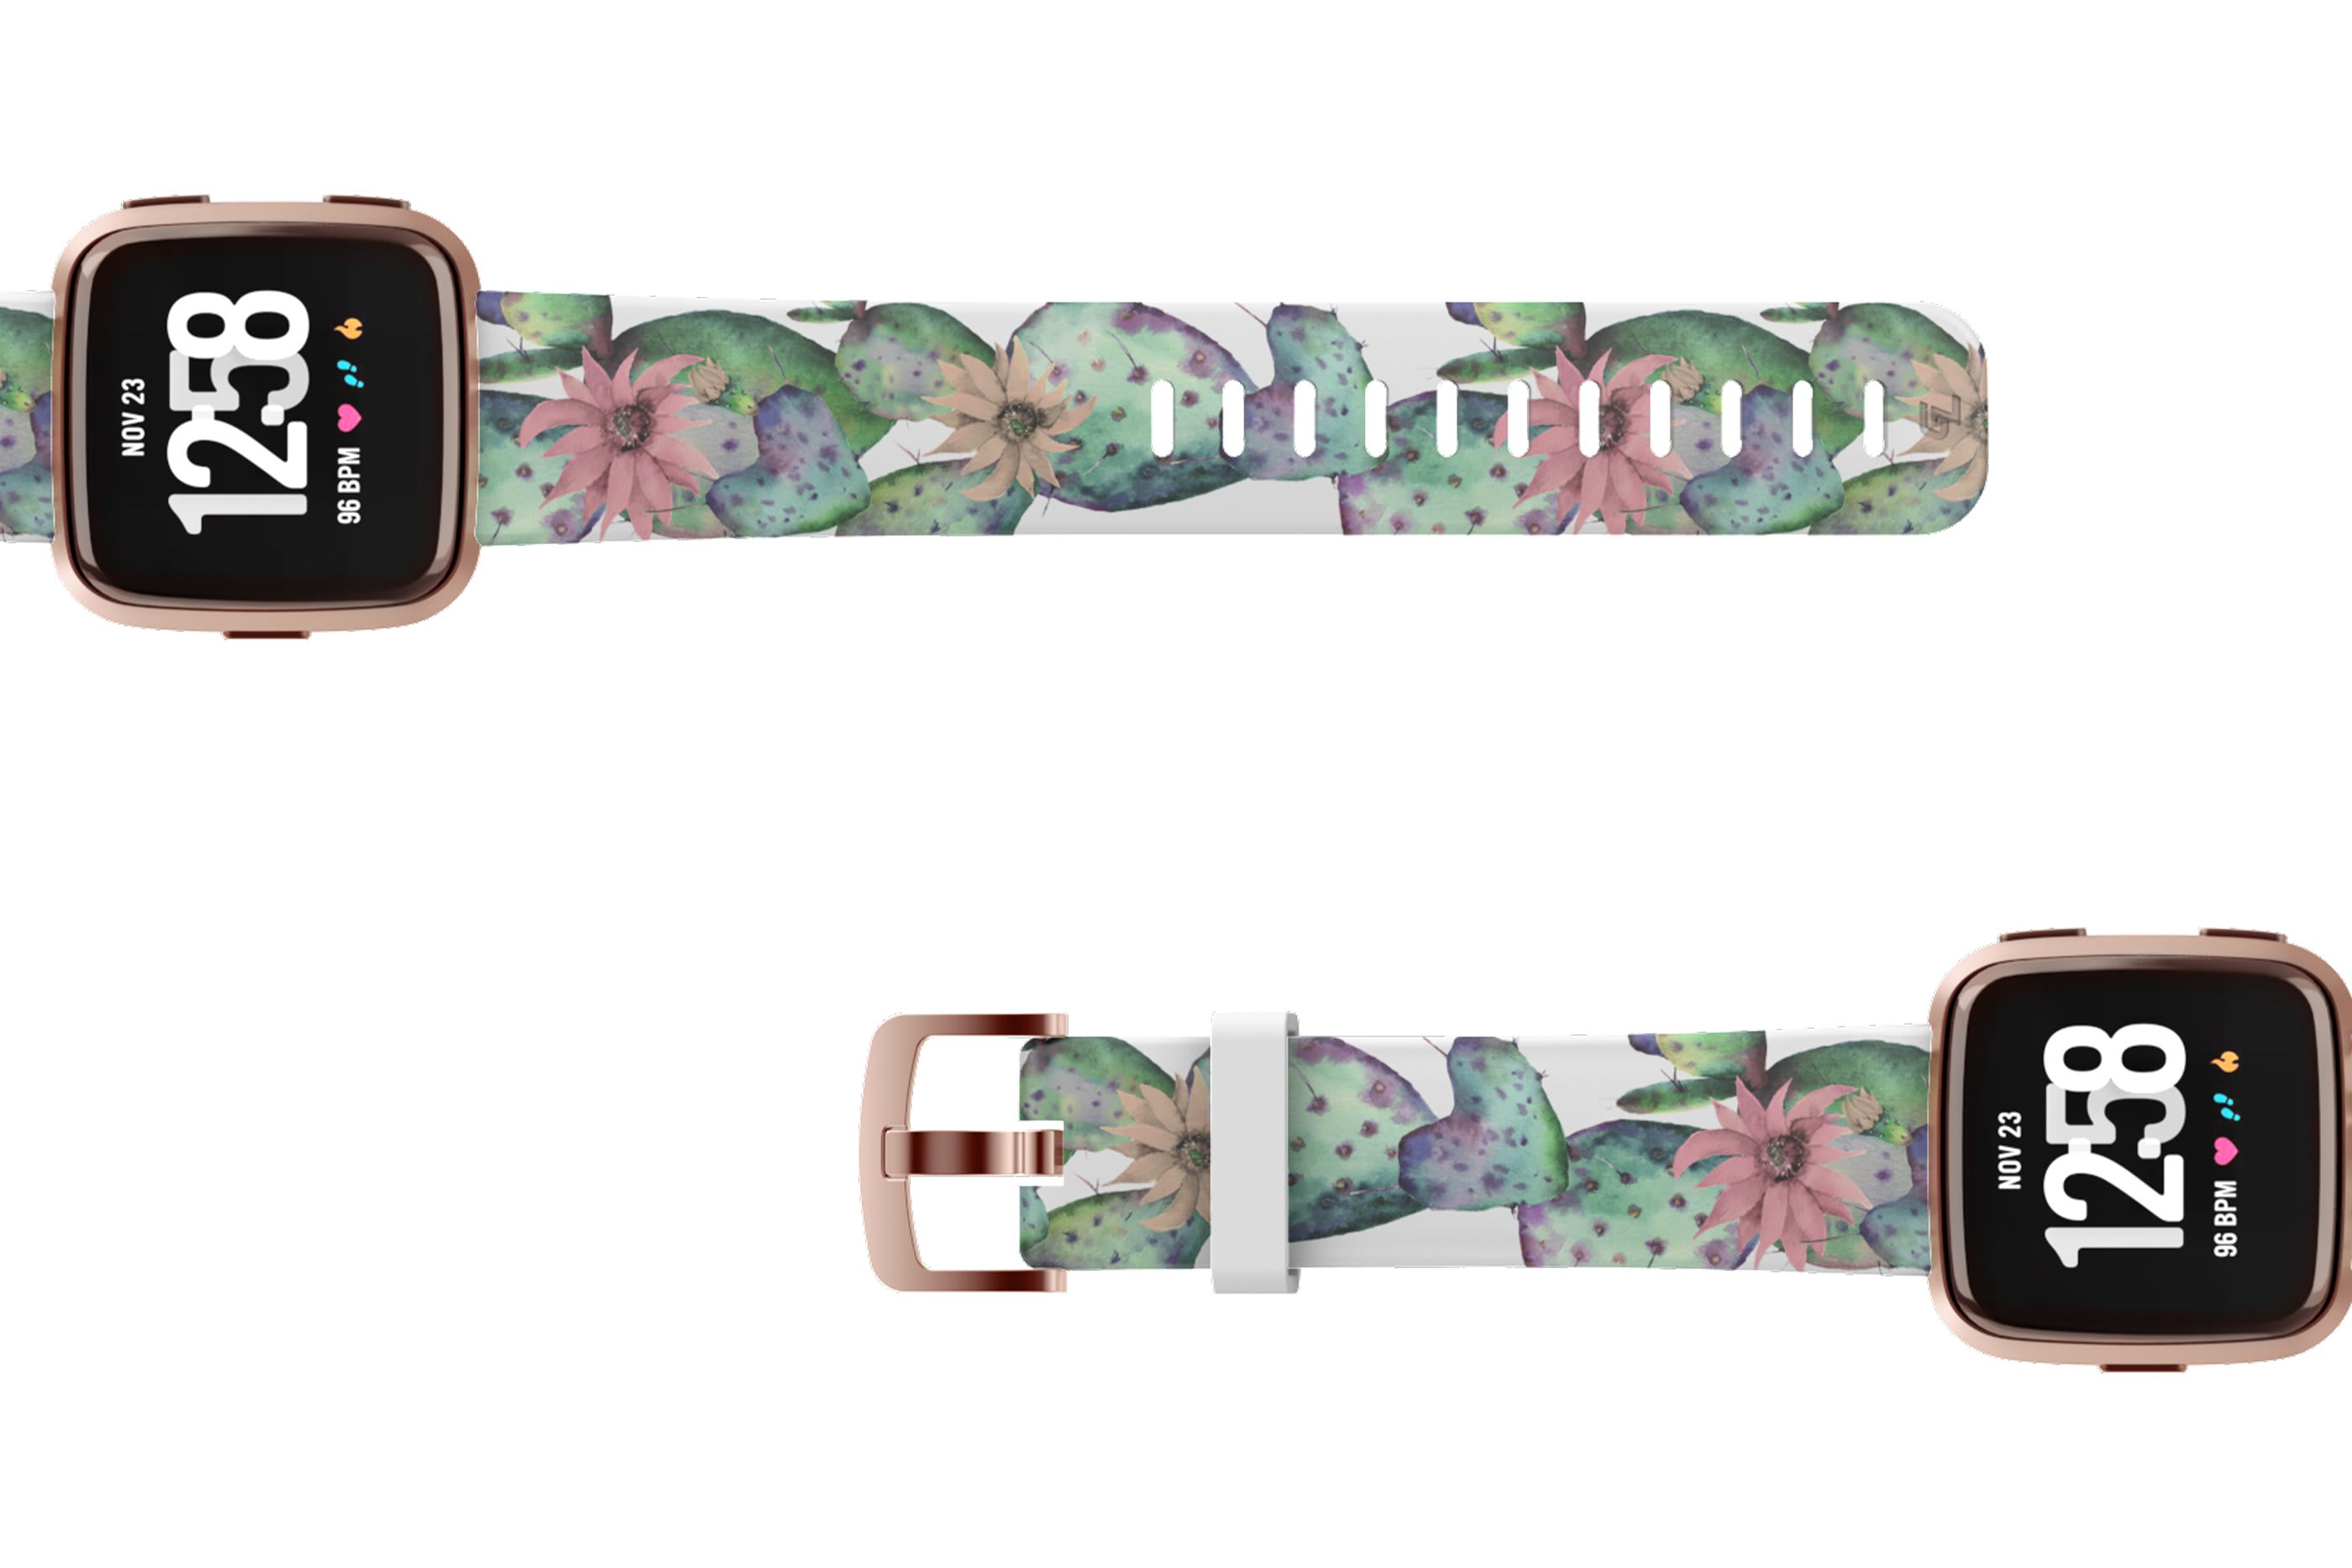 Cactus Bloom Fitbit Versa watch band with gray hardware viewed top down